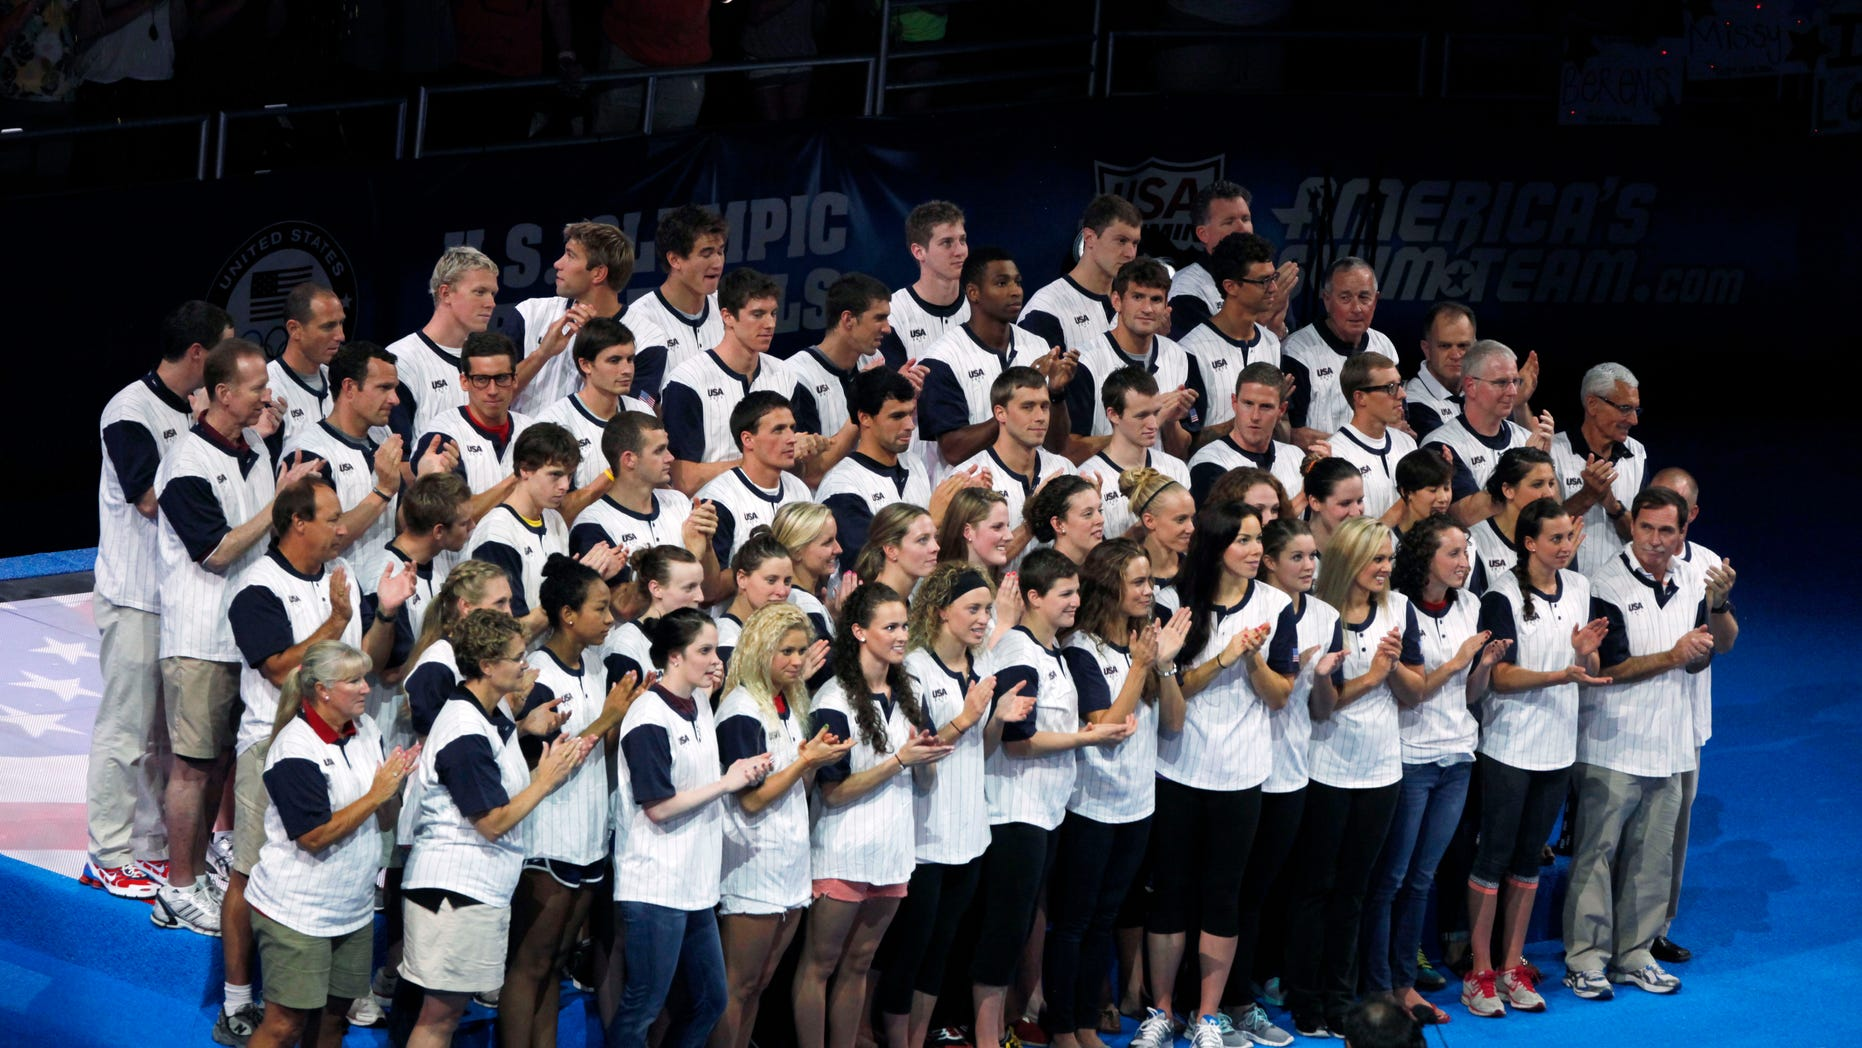 July 2, 2012: The U.S. Olympic swim team is introduced during the closing ceremony of the U.S. Olympic swimming trials.